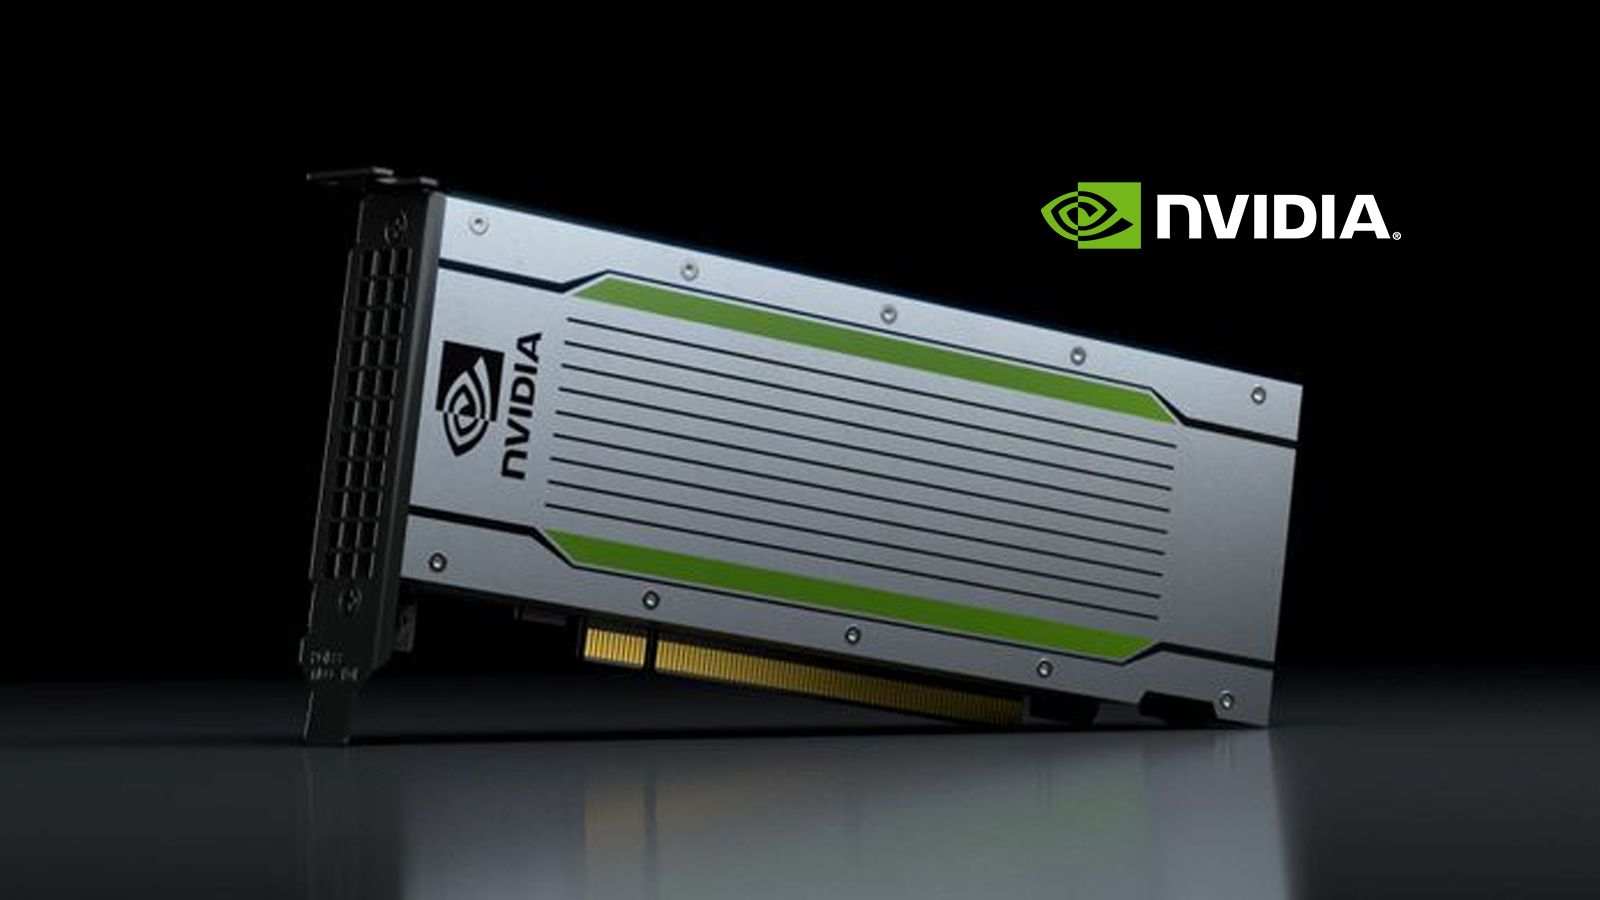 New NVIDIA Data Center Inference Platform to Fuel Next Wave